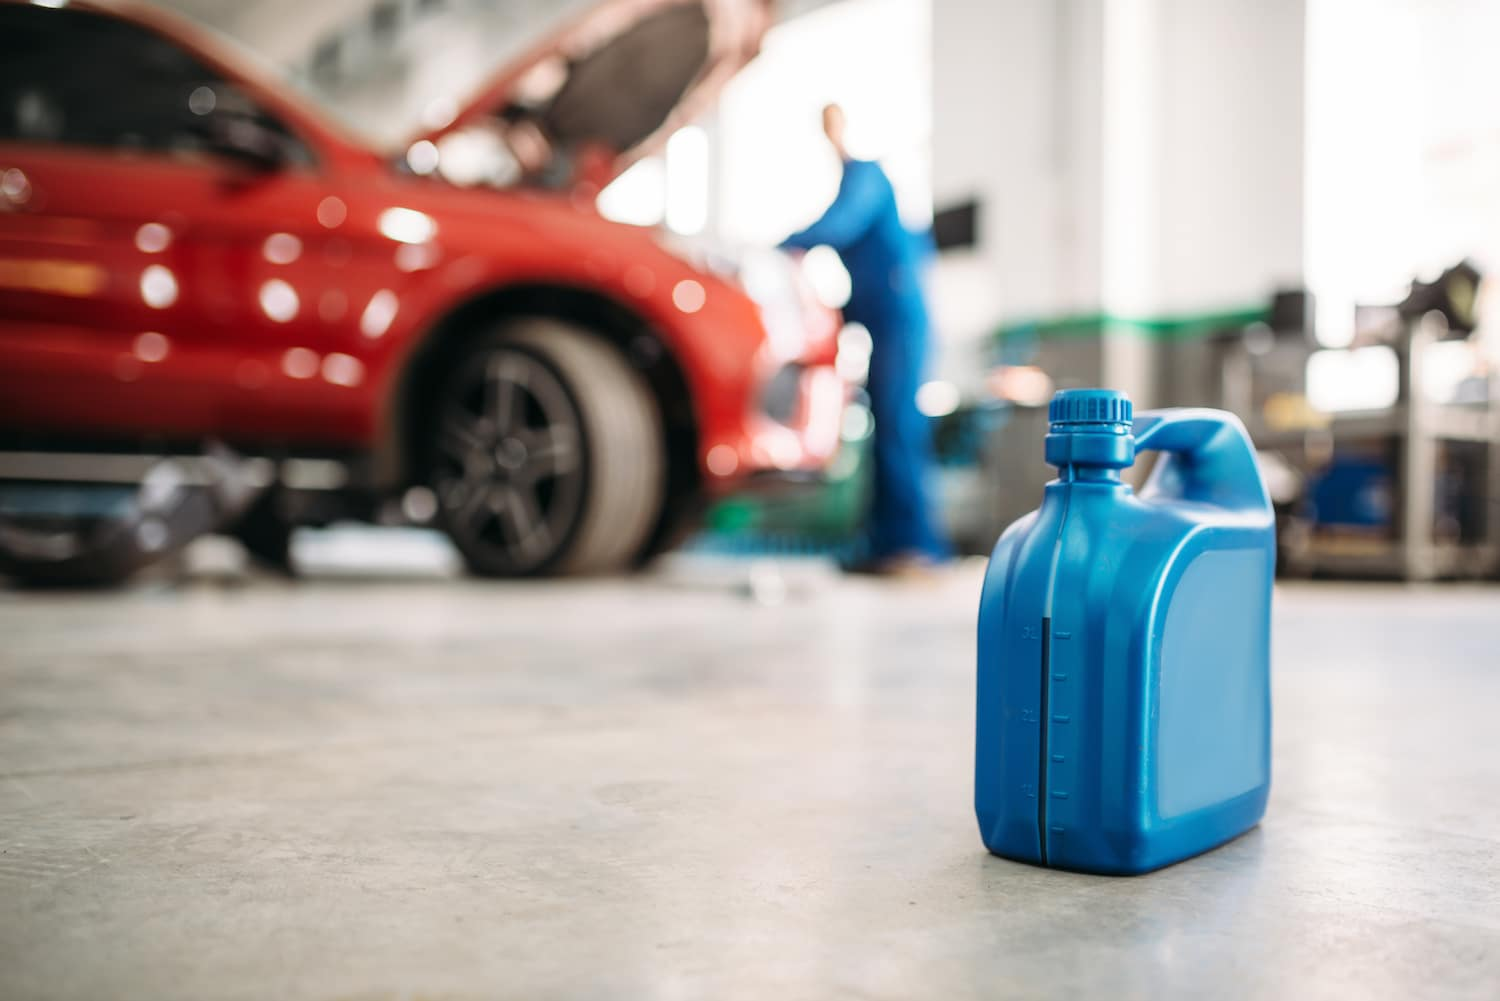 Oil Changes at Nissan   Engine Oil Container